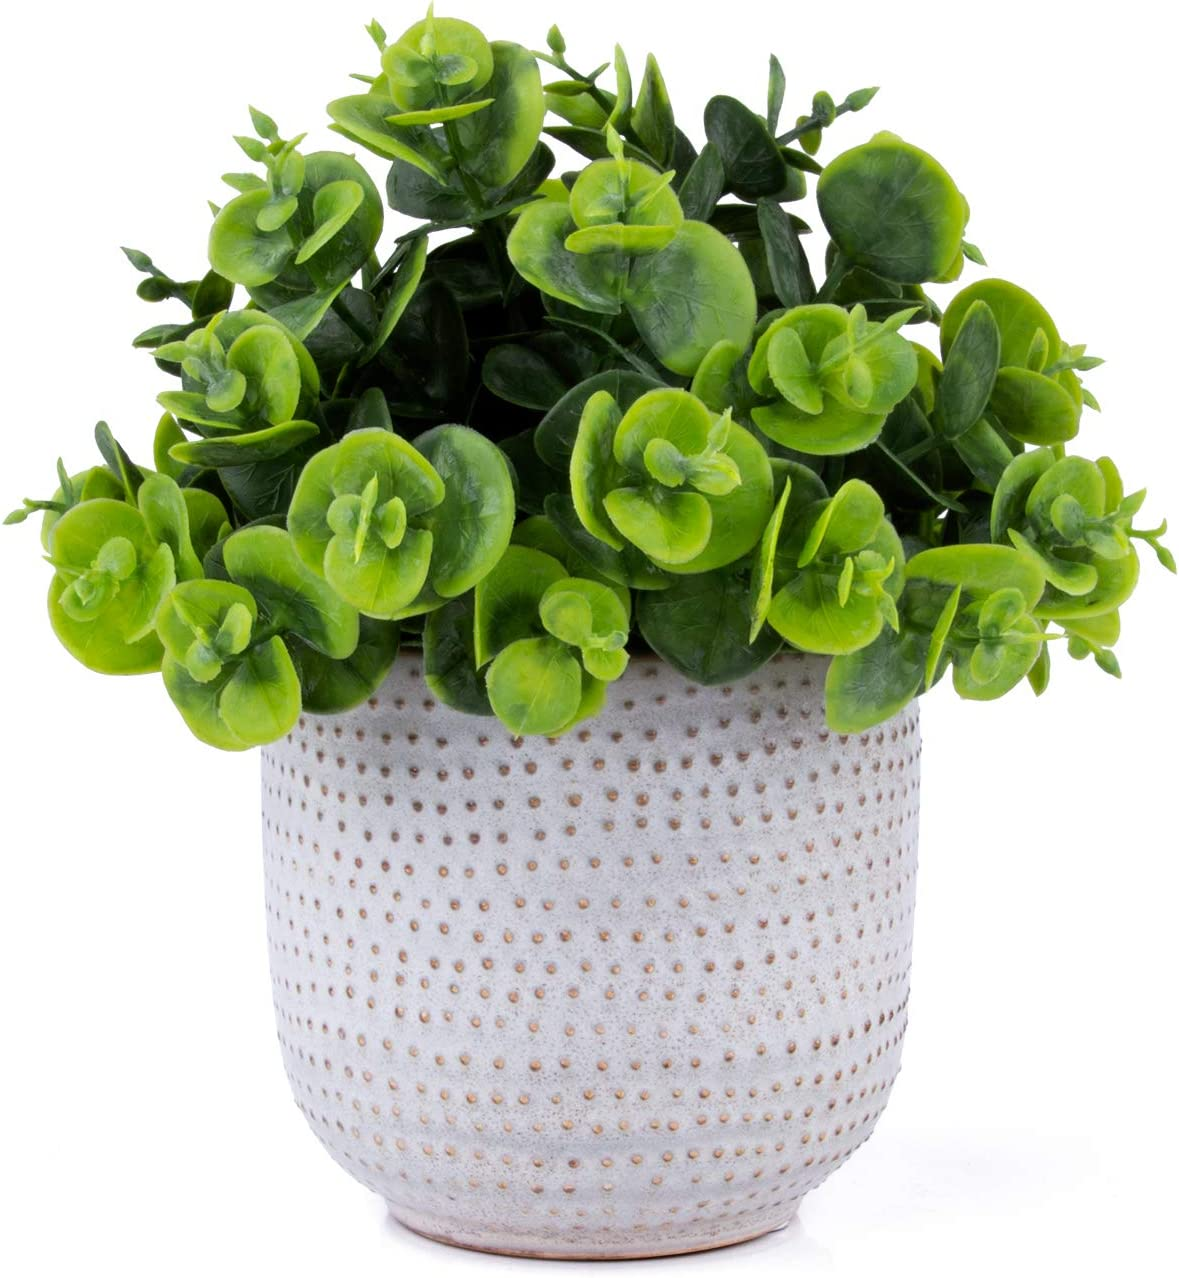 karlliu Artificial Plants Succulent Flowers with Ceramic Pot, Green Faux Potted Plants for Office Table Bathroom Greenery Room Home Decor